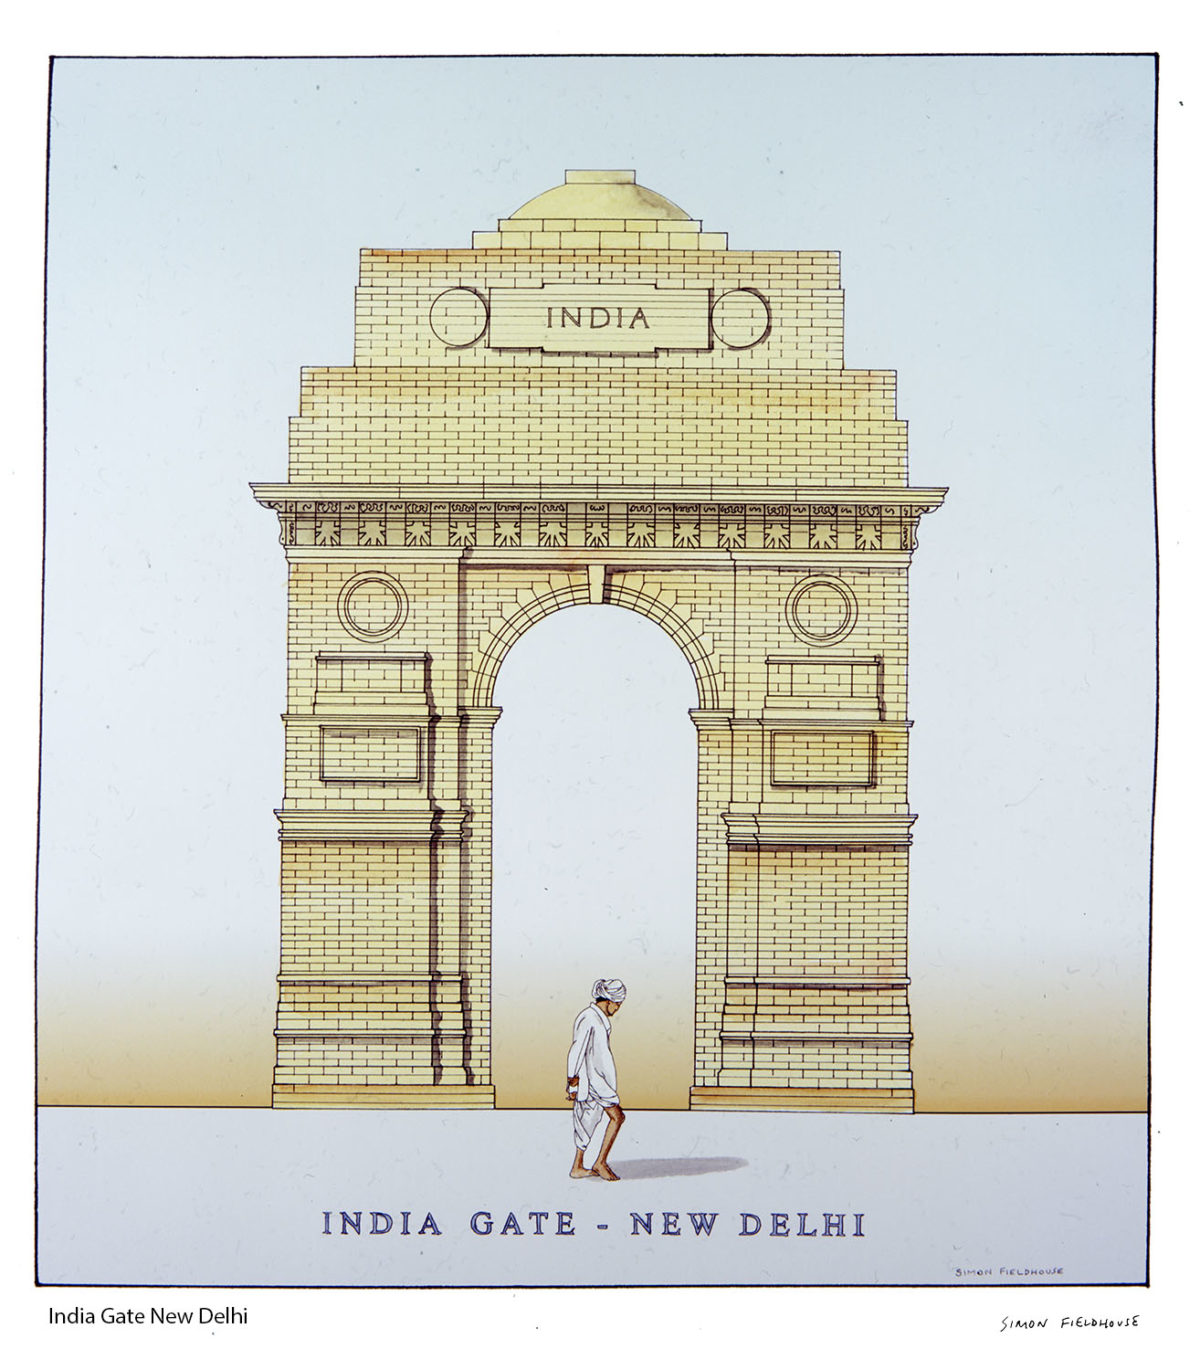 1200x1370 India Gate New Delhi